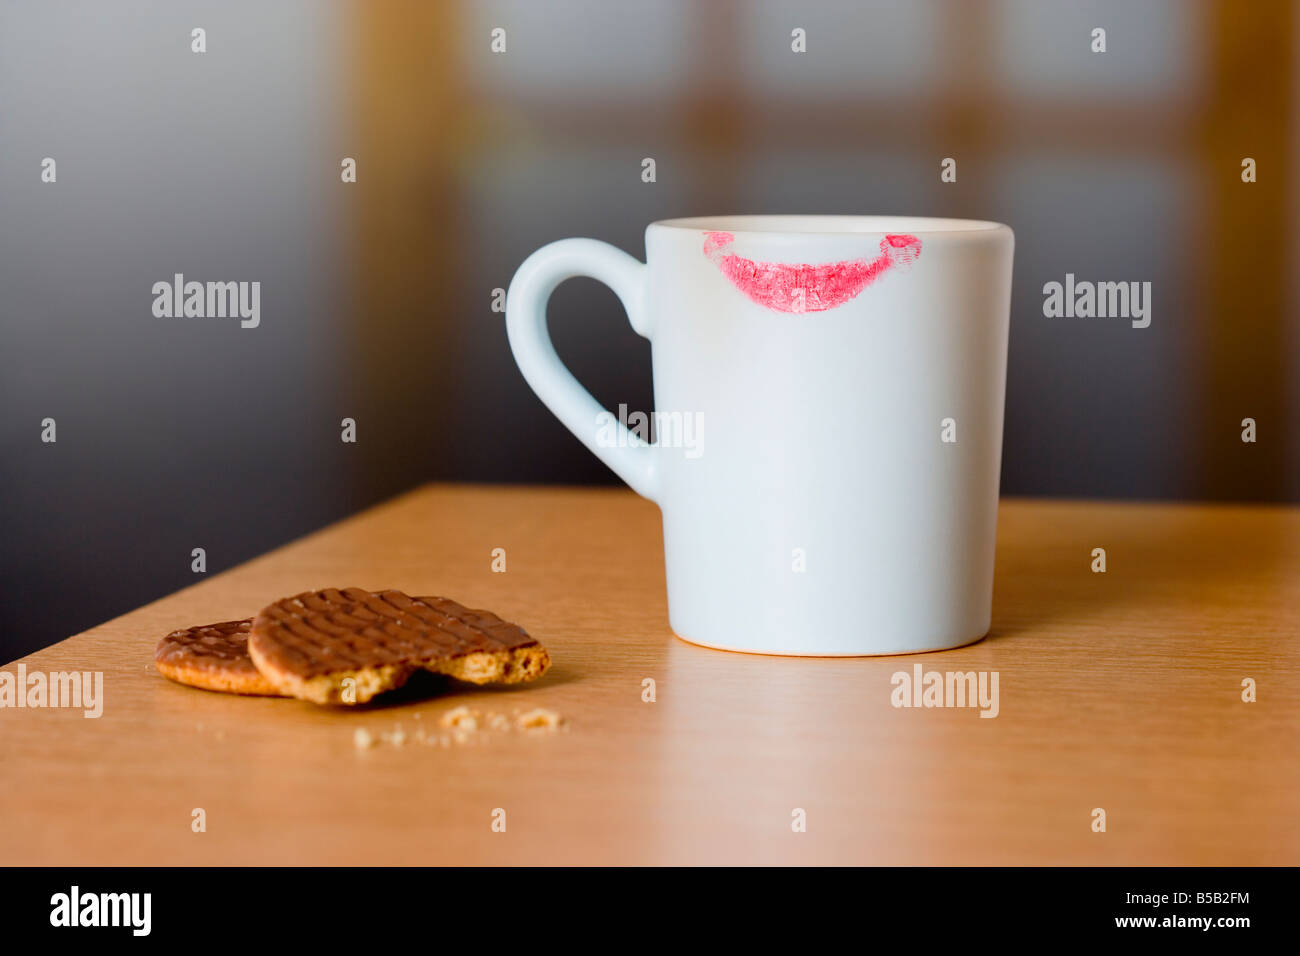 Coffee mug with lipstick mark and chocolate biscuits on table - Stock Image